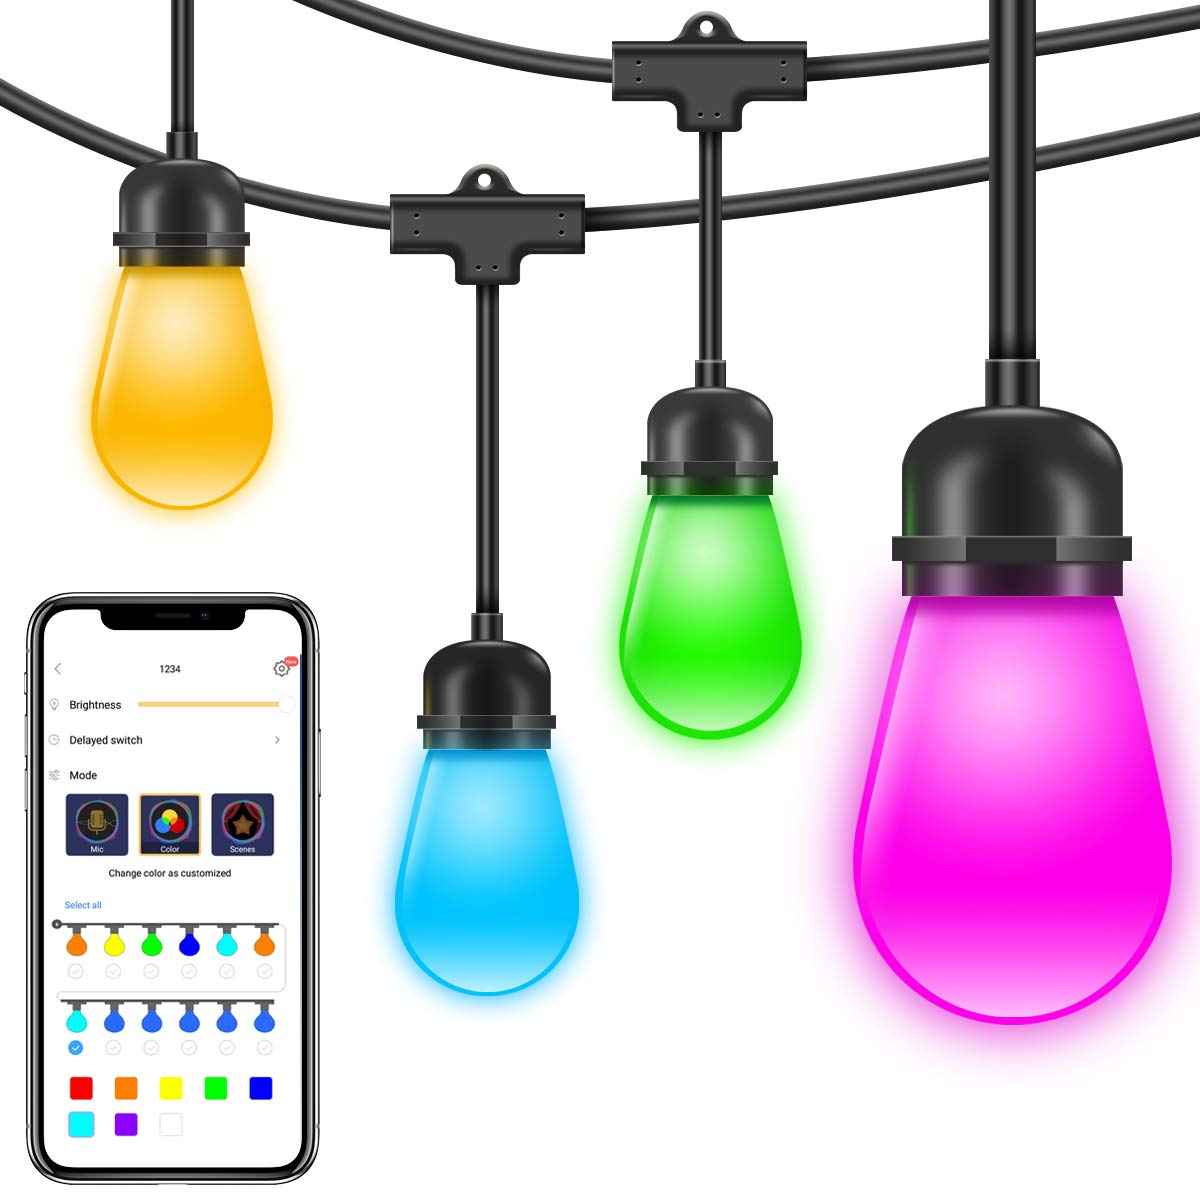 Govee Waterproof Led Outdoor String Lights, DreamColor Cafe Lights with APP (DIY, RGBW, Sync to Music), 36Ft 12 Bulbs Dimmable Color Changing Hanging Light for Patio Commercial Grade Party Holiday by Govee